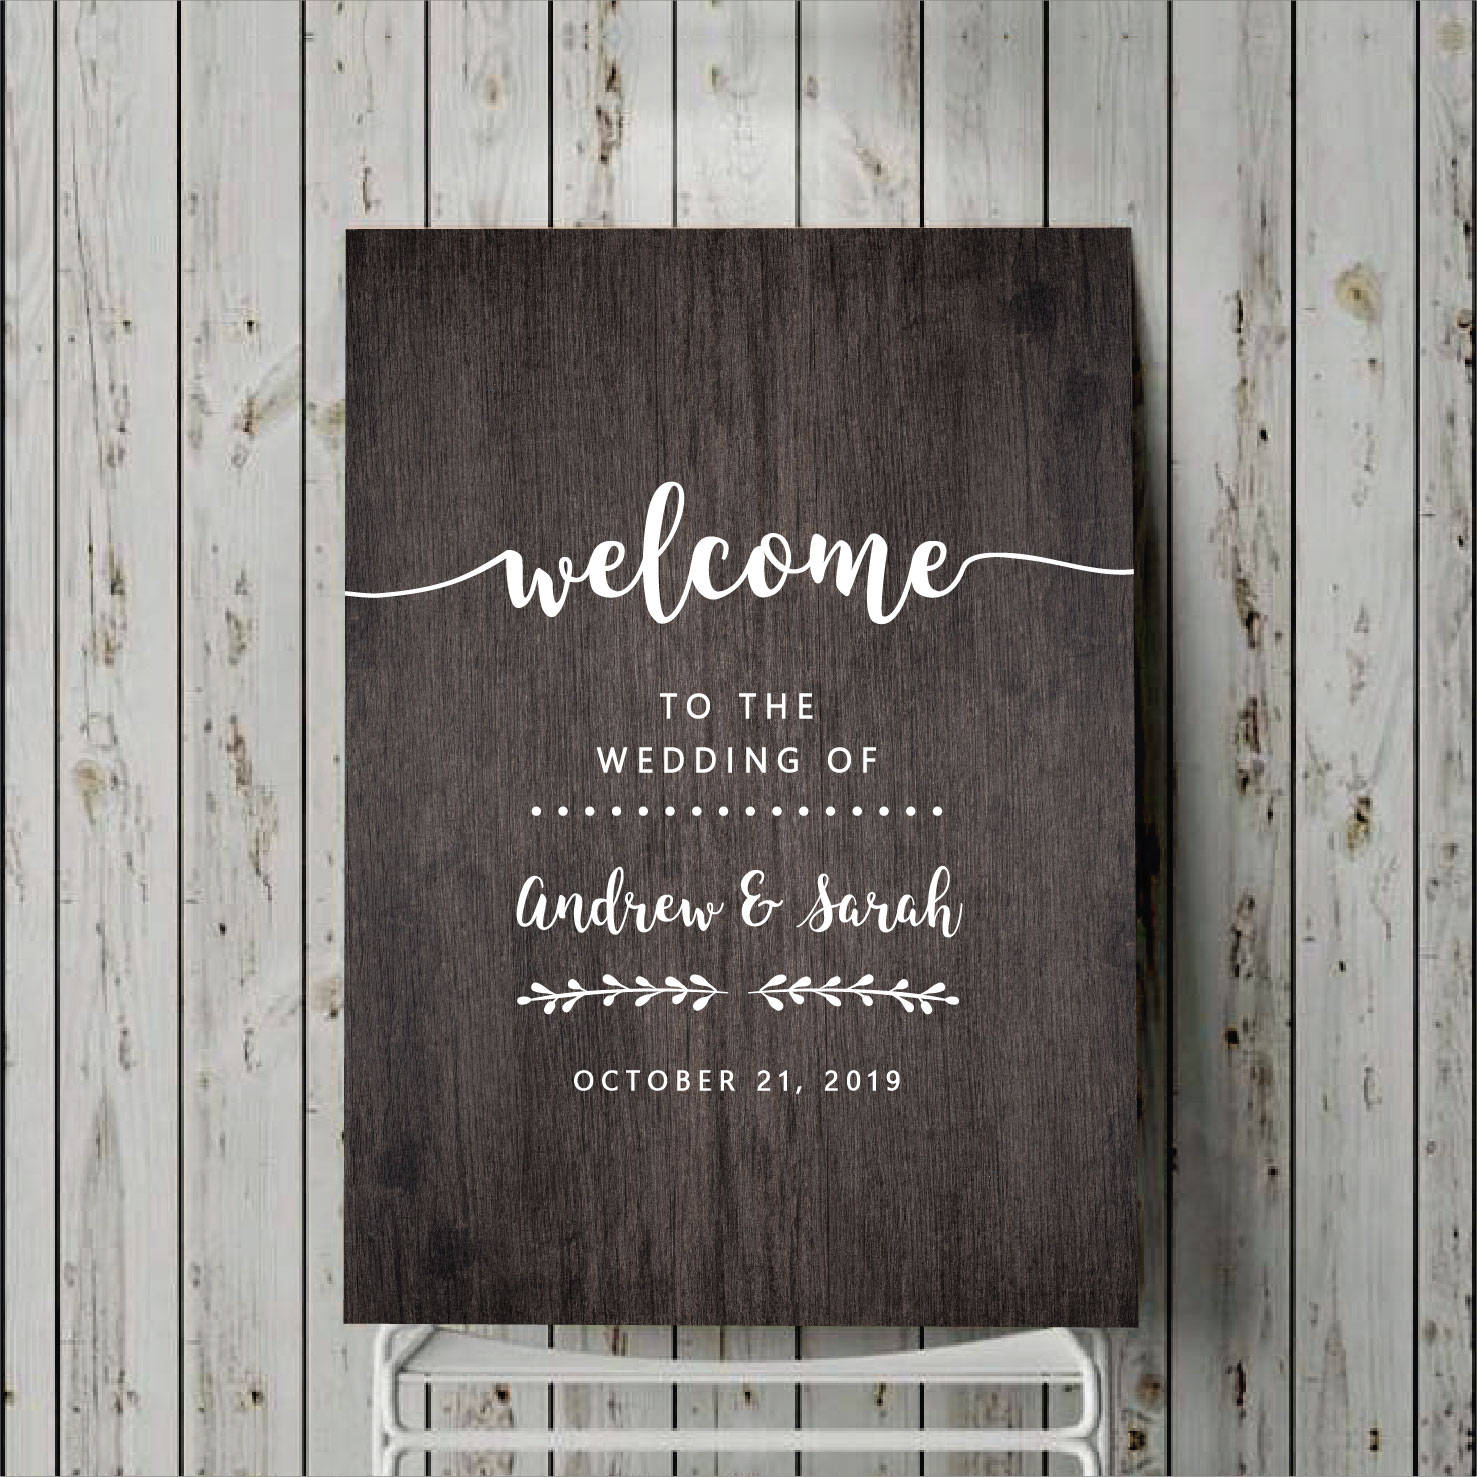 Custom Wedding Sign Decal Signage Welcome Sticker For Board Personalised Decor White Vinyl Names